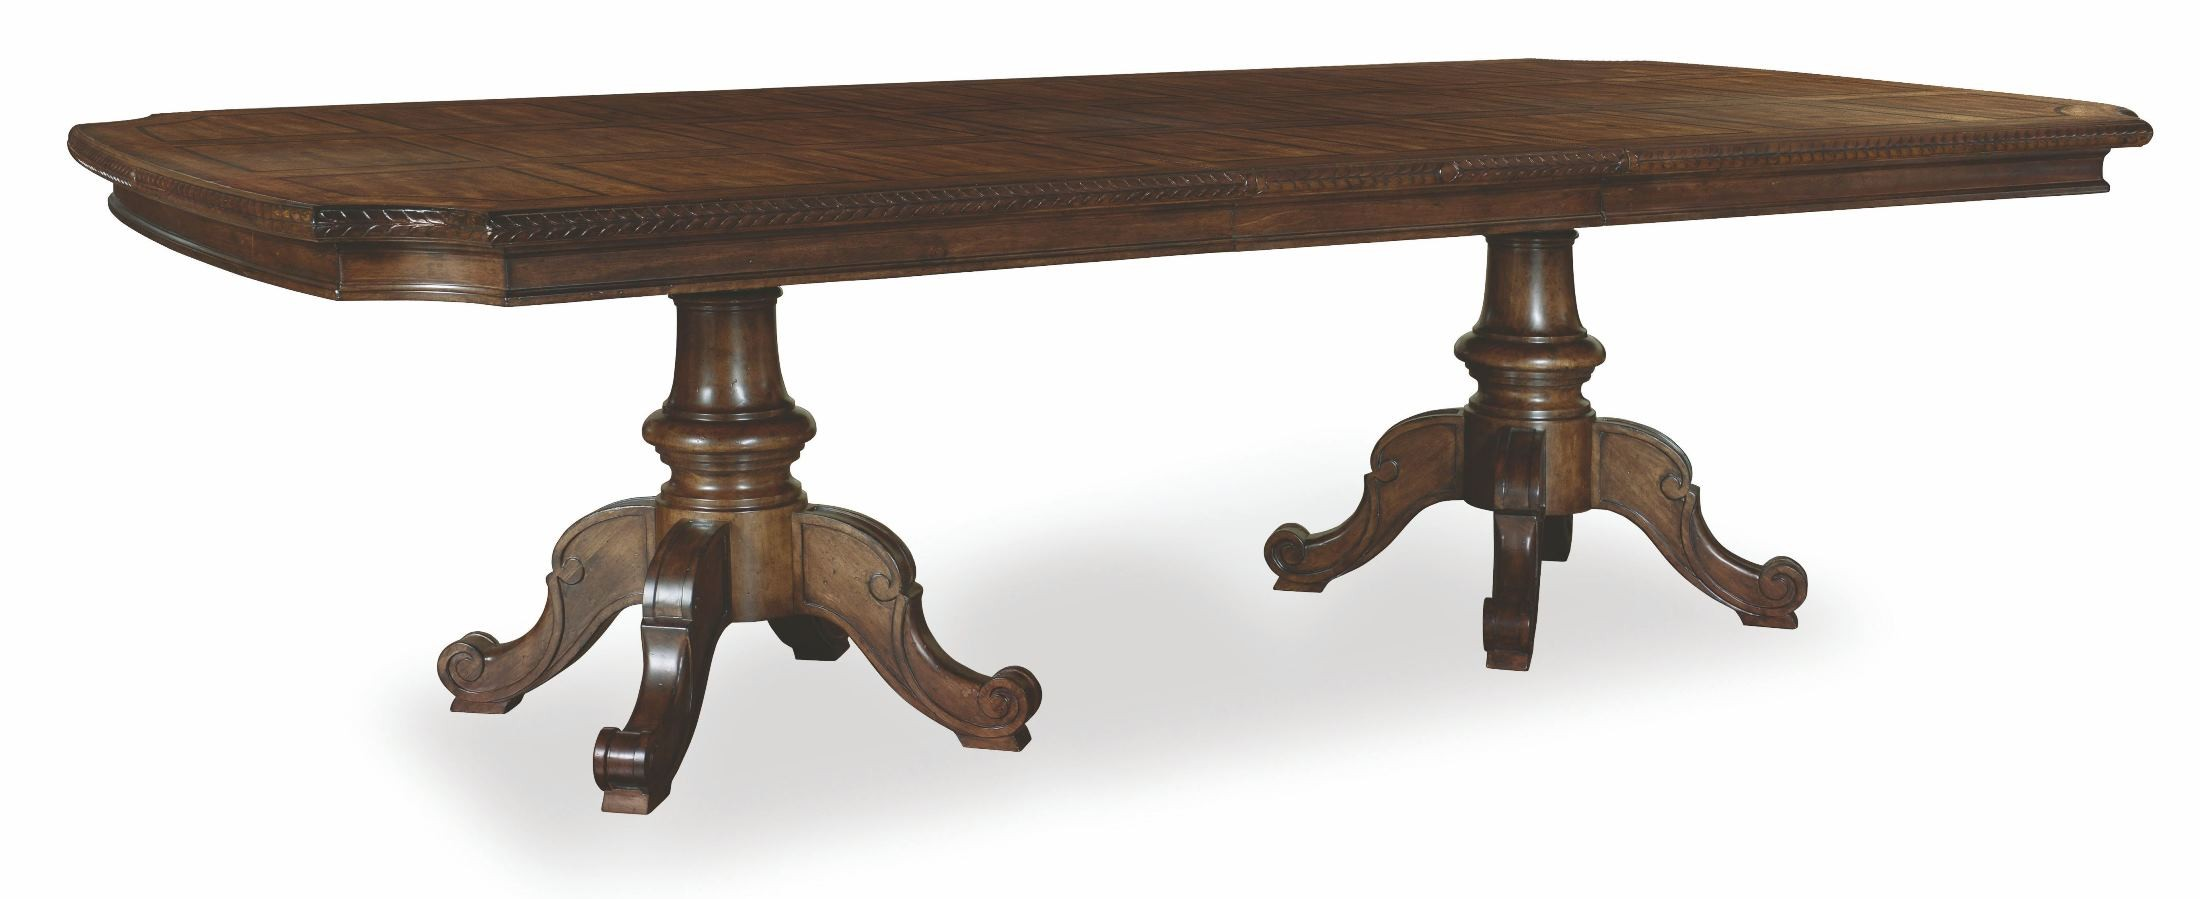 chateaux walnut double pedestal extendable dining table from art 213221 1812 coleman furniture. Black Bedroom Furniture Sets. Home Design Ideas